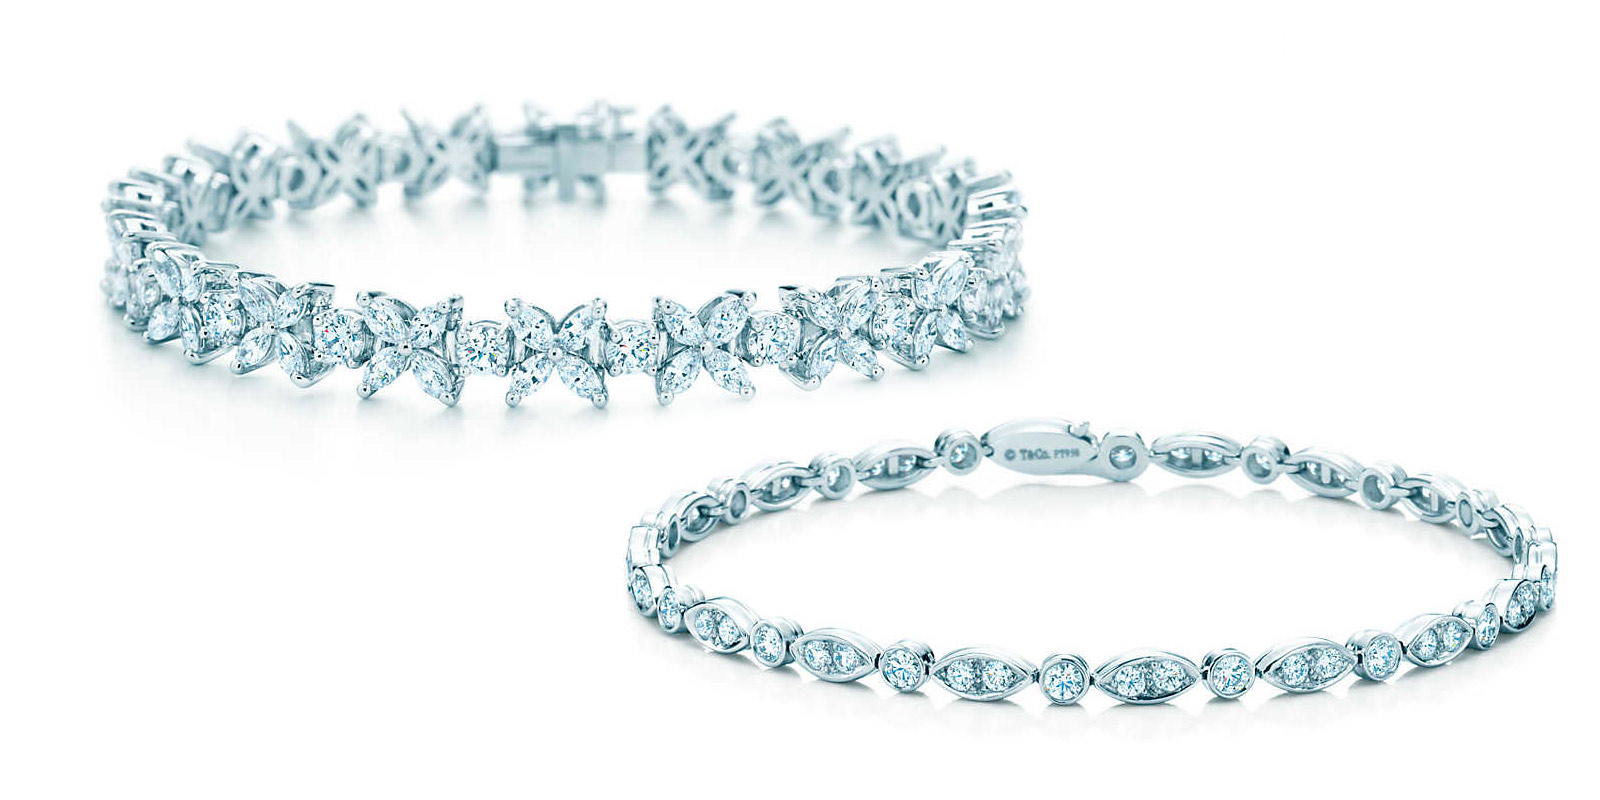 Tiffany&Co tennis bracelets in platinum and diamonds